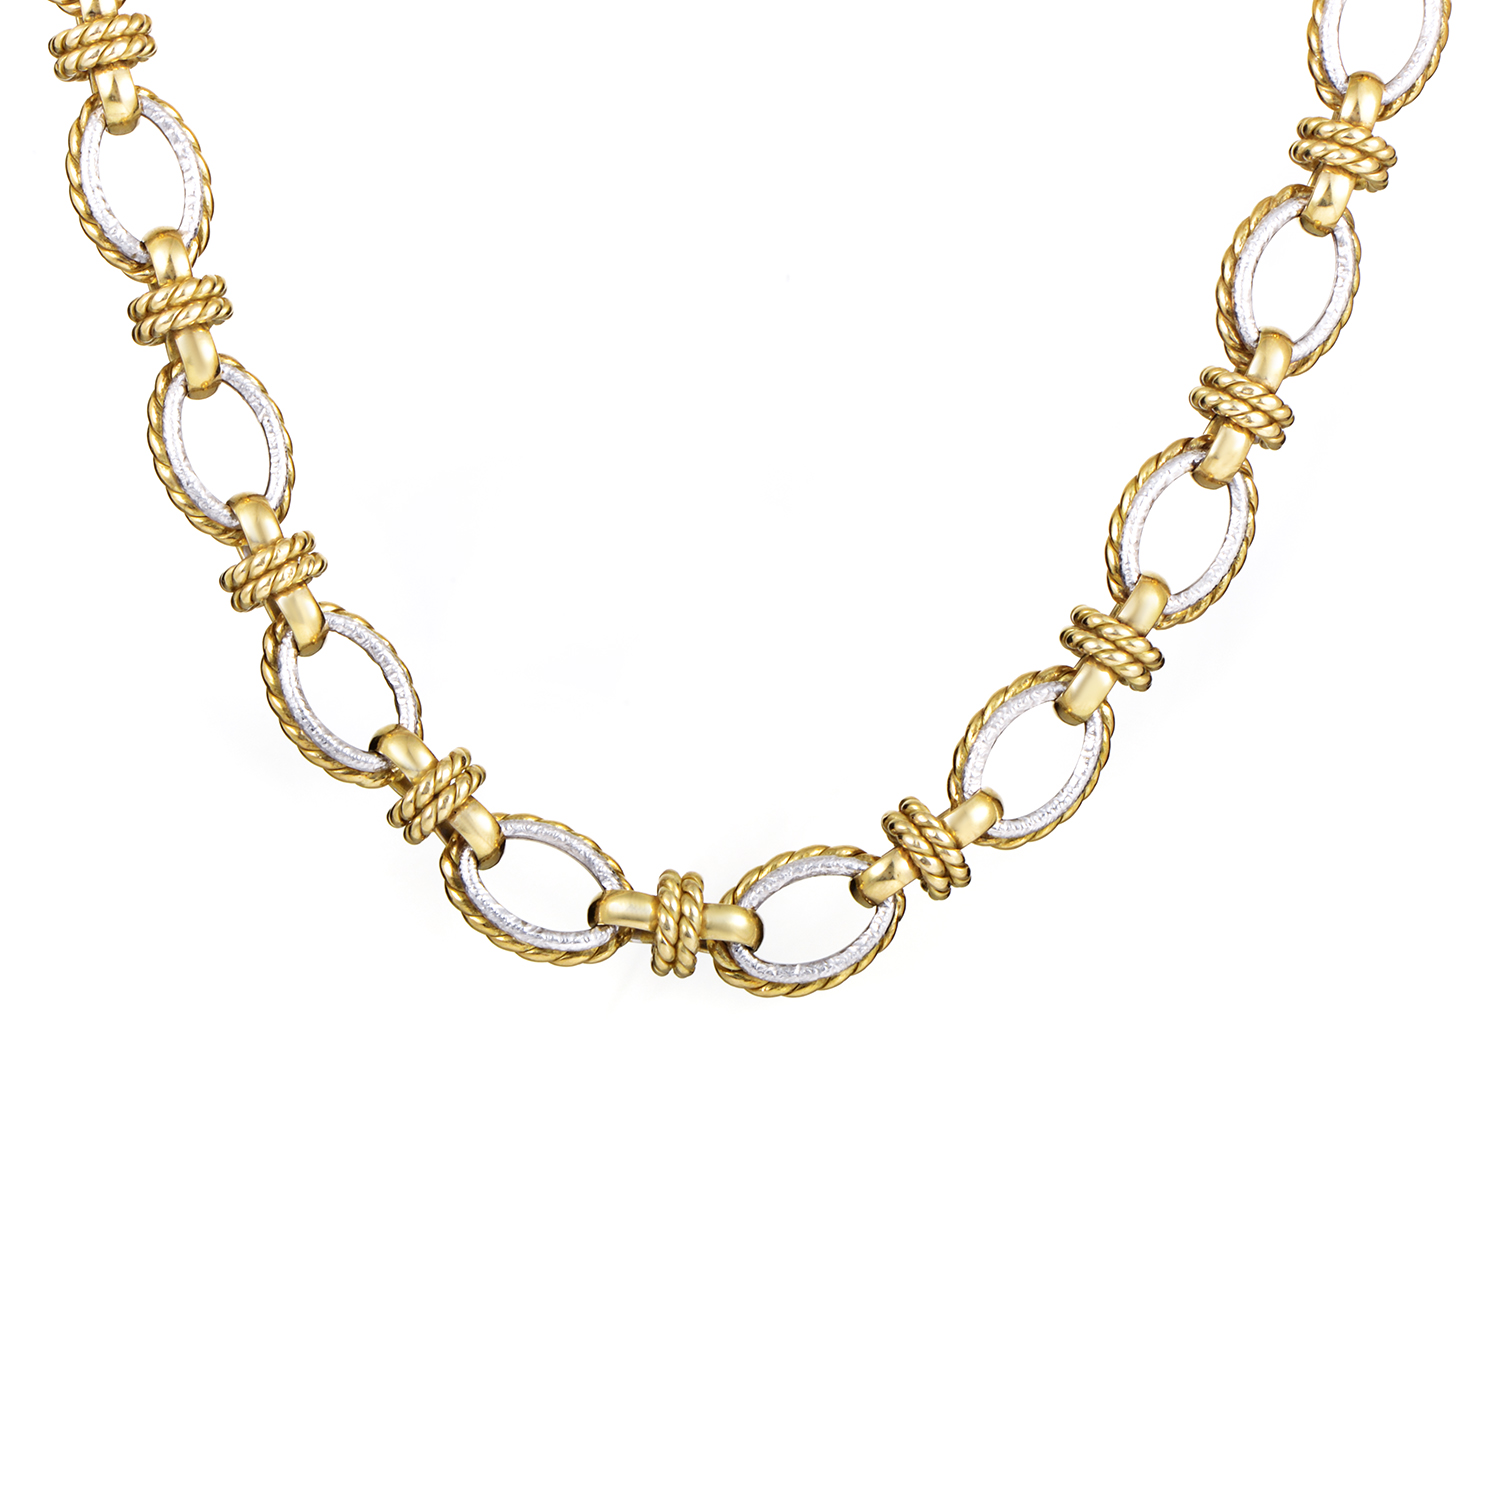 Women's 18K White & Yellow Gold Link Choker Necklace